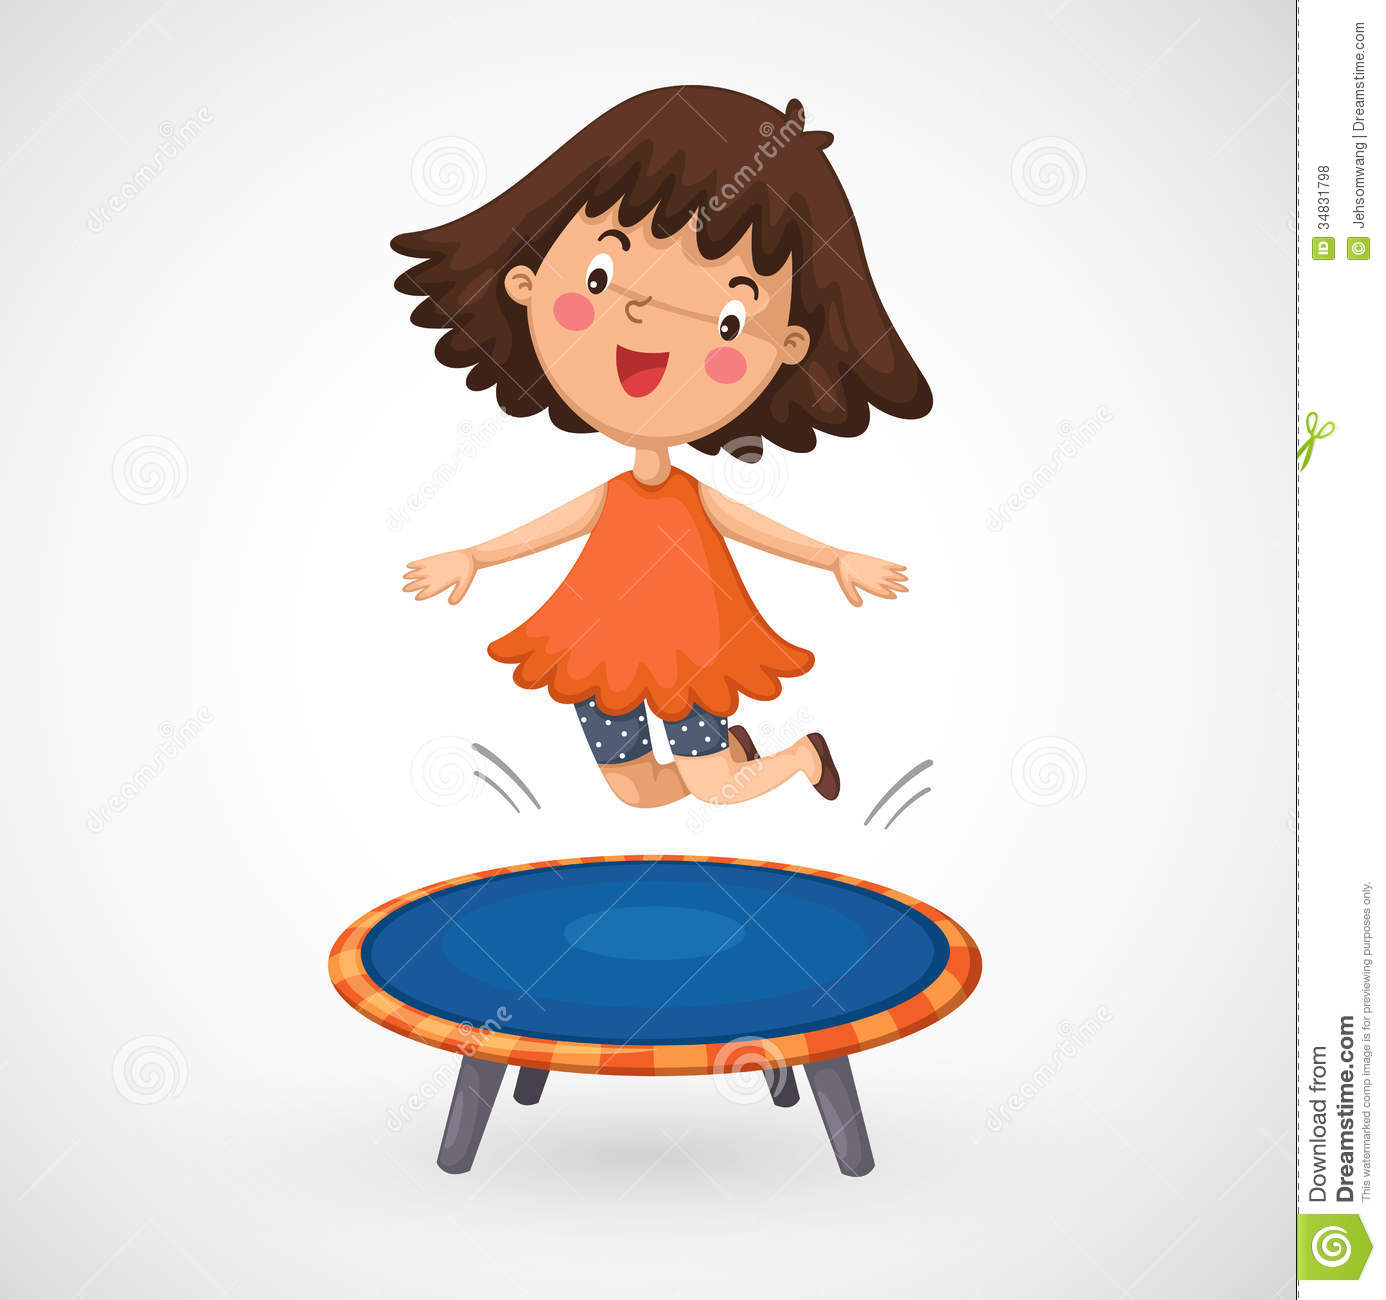 girl-jumping-trampoline-illustration-iso